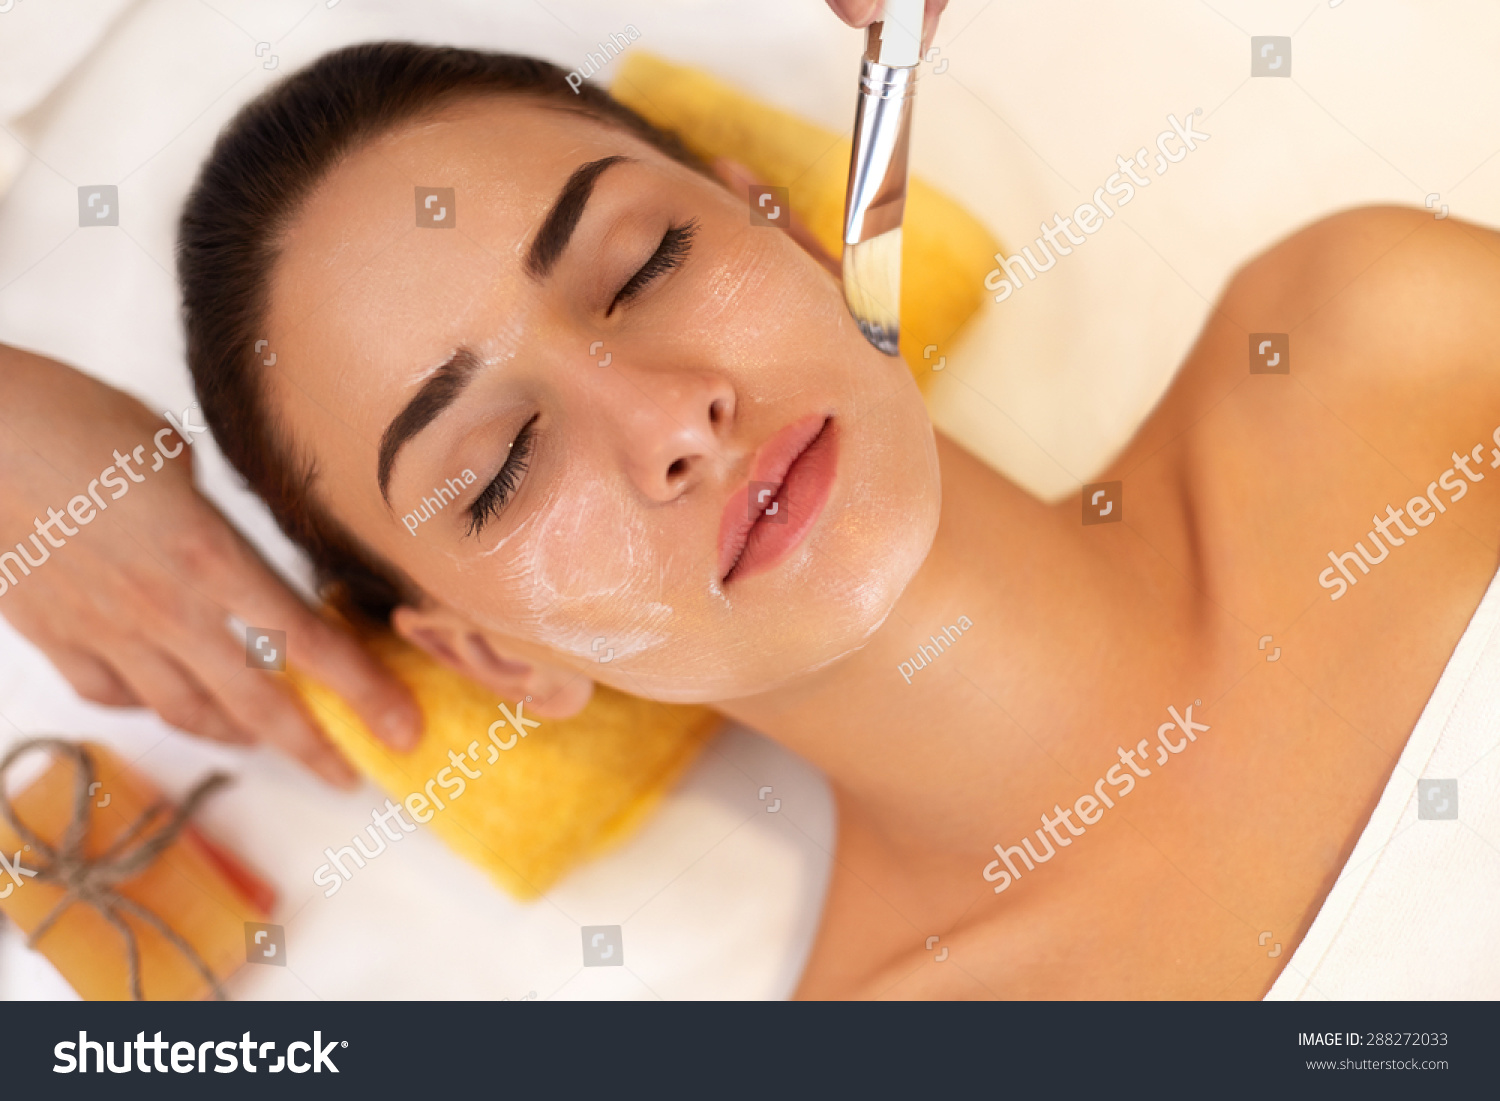 Face treatment woman beauty salon gets stock photo for A trial beauty treatment salon